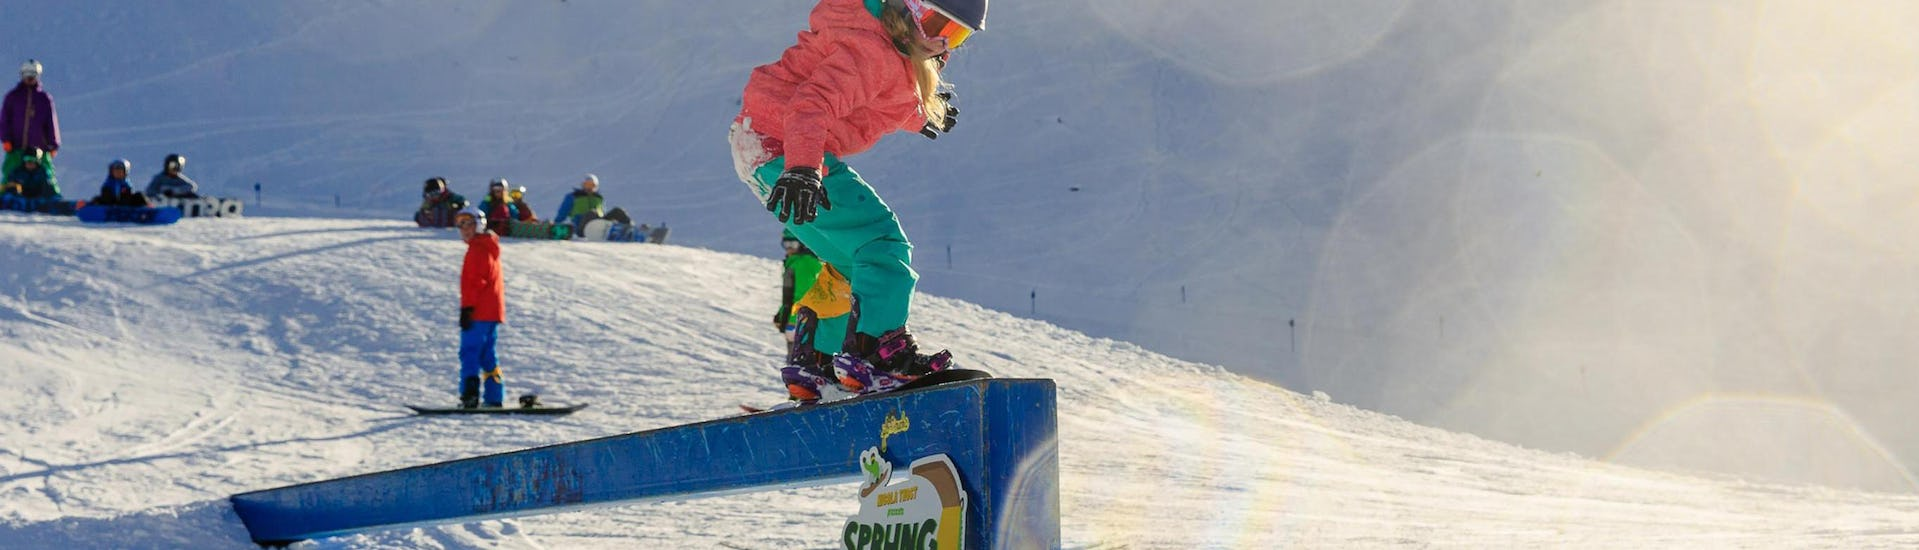 Snowboarding Lessons for Kids (from 7 years) - All Levels